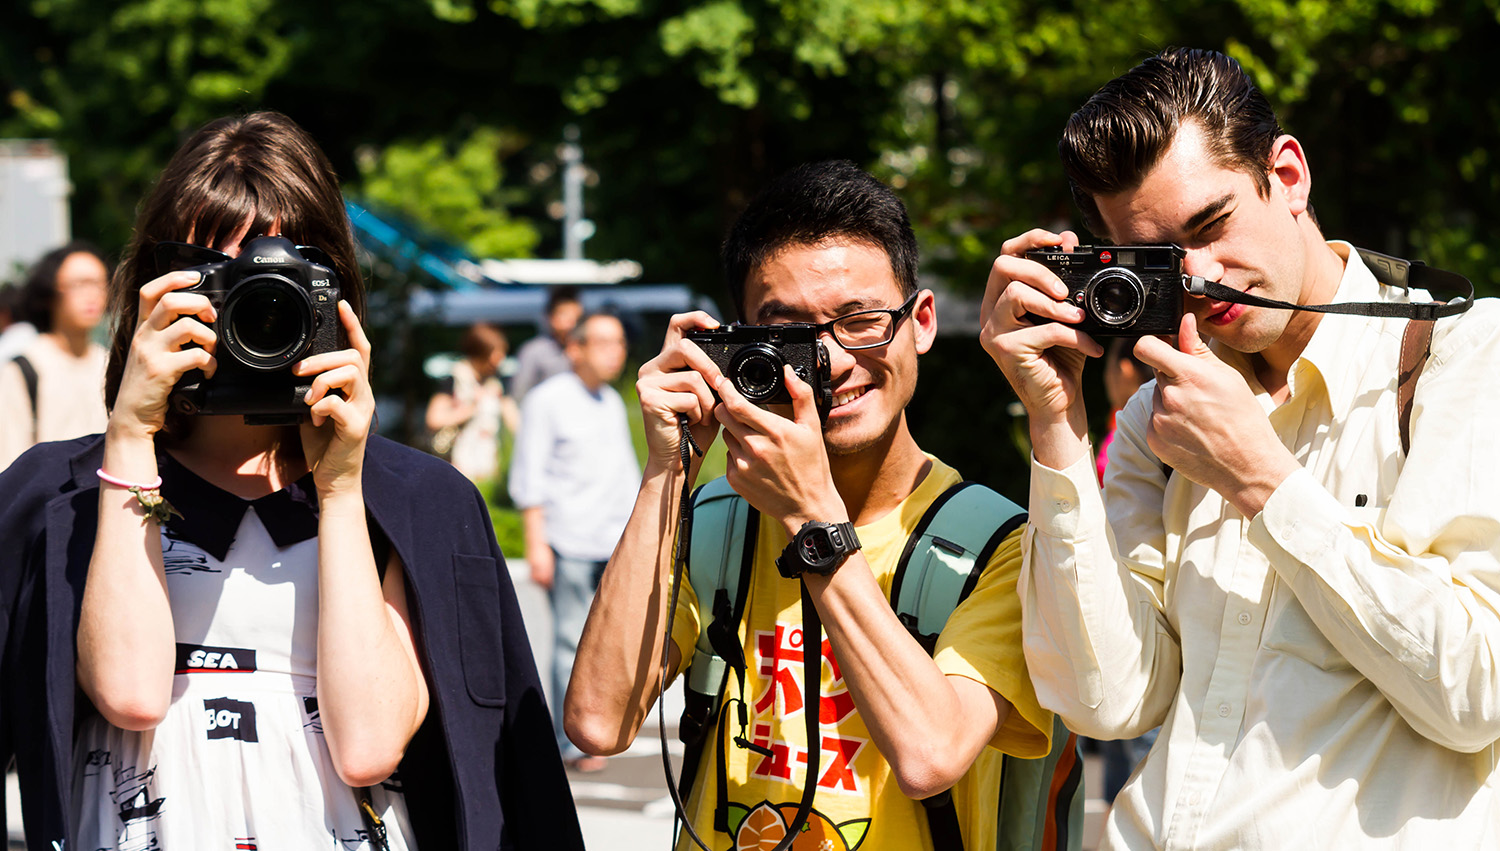 Some camera loving people. (I really want that guys camera...)